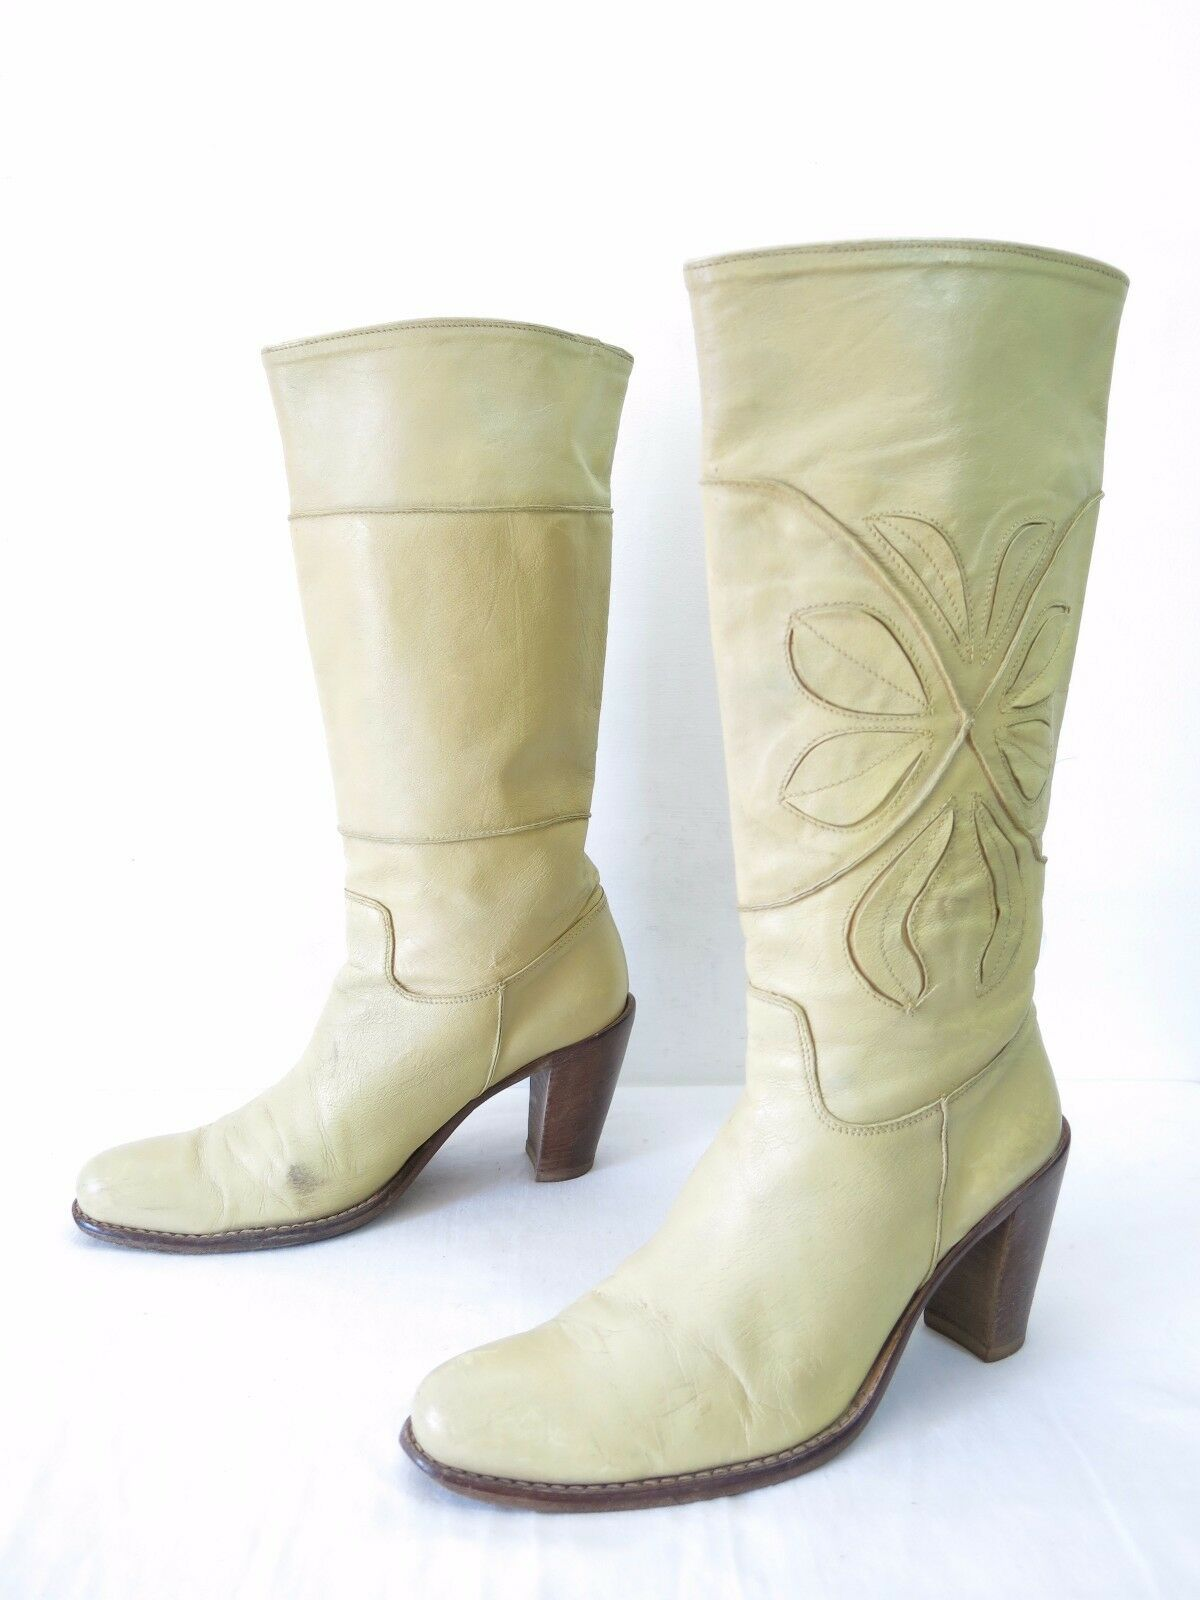 MOMA Boots Womens 37.5 7.5 Ivory Cream Leather Campus High Heel Applique Slip On